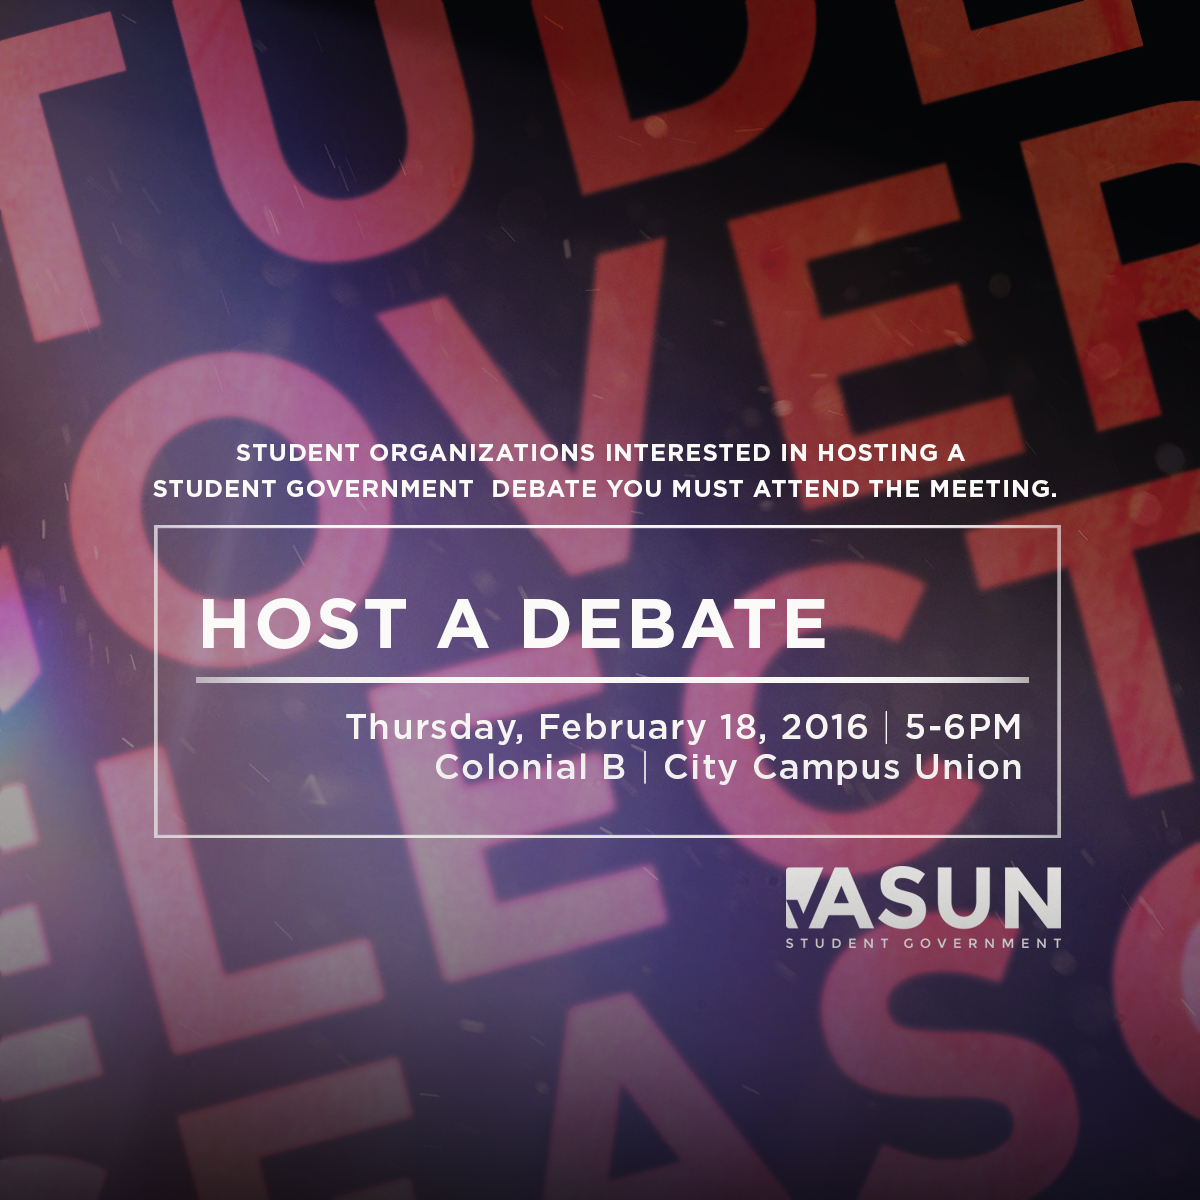 Student Organizations interested in hosting a Student Government debate must attend the meeting